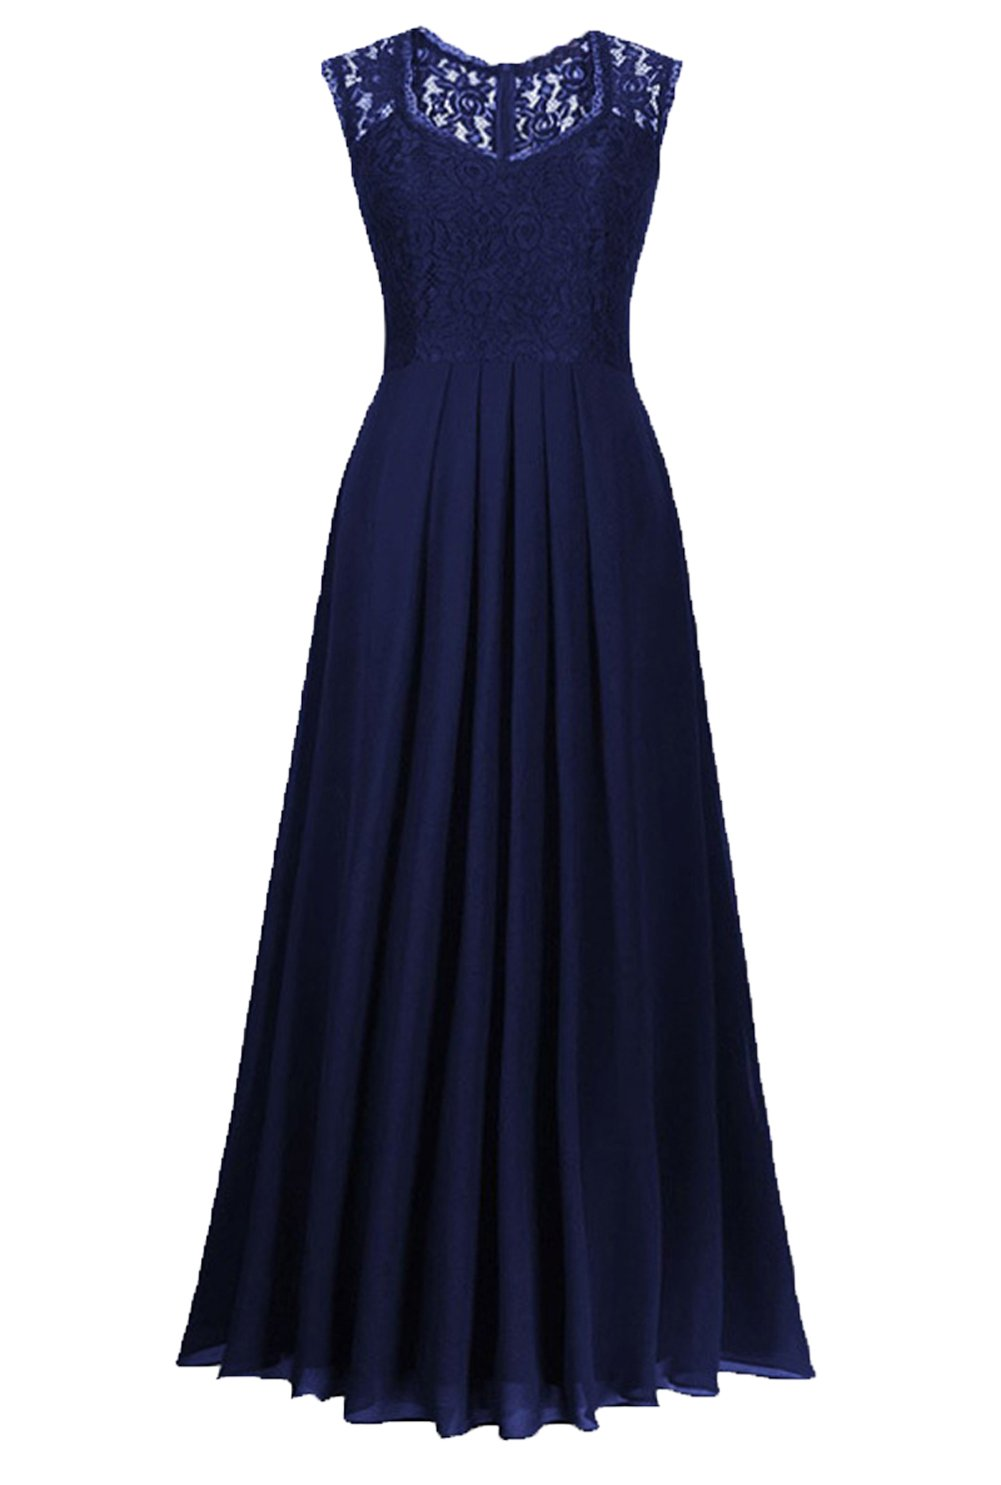 Available at Amazon: LECHEERS Women's Wedding V-Neck Vintage Maxi Bridesmaid Evening Formal Dress